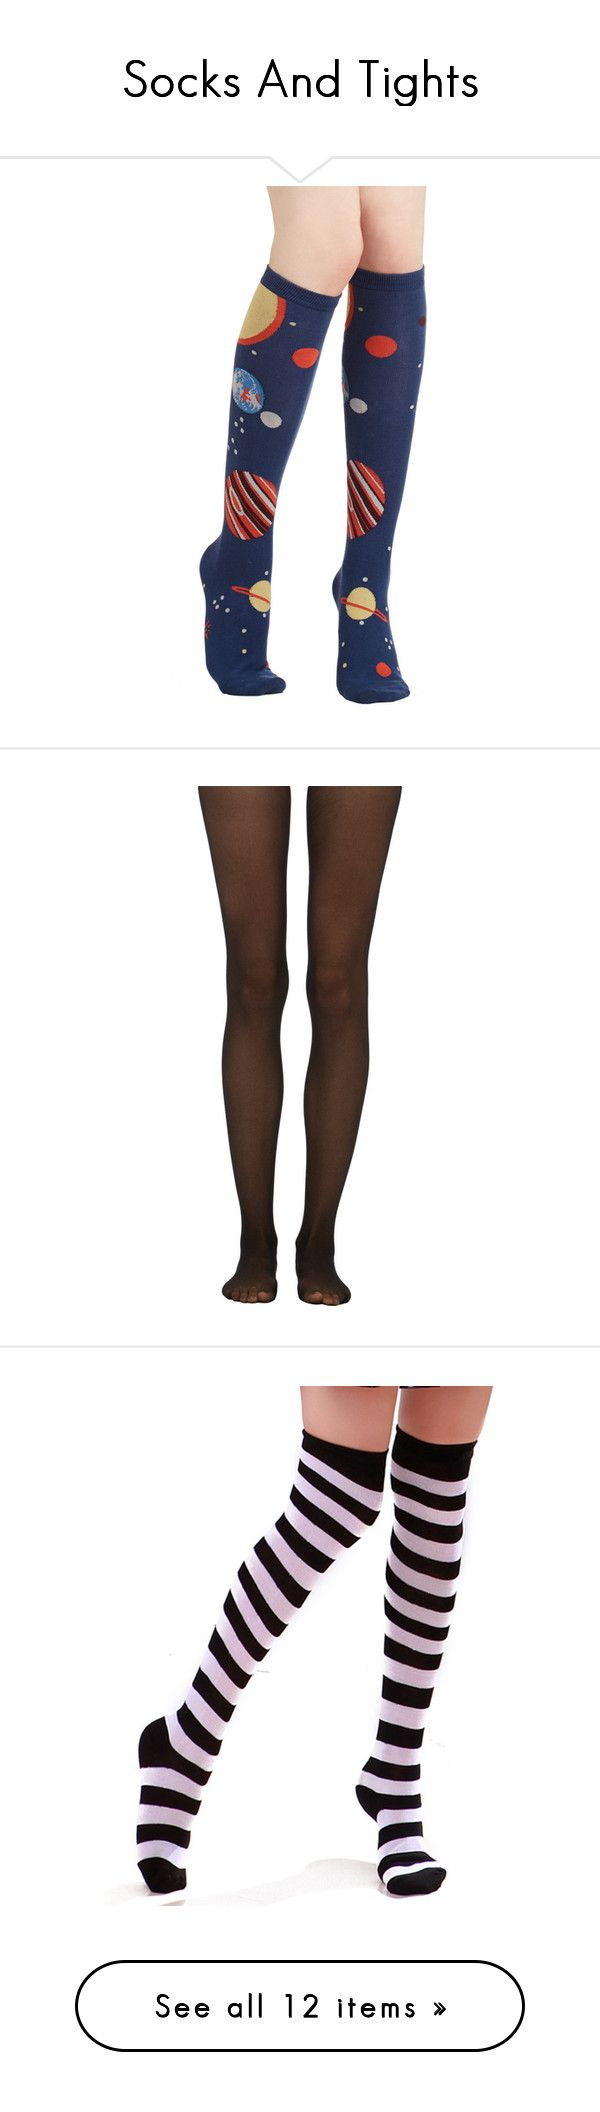 """Socks And Tights"" by taebae13 ❤ liked on Polyvore featuring intimates, hosiery, socks, blue, tights, galaxy, space, foundation, knee-high sock and blue knee socks"